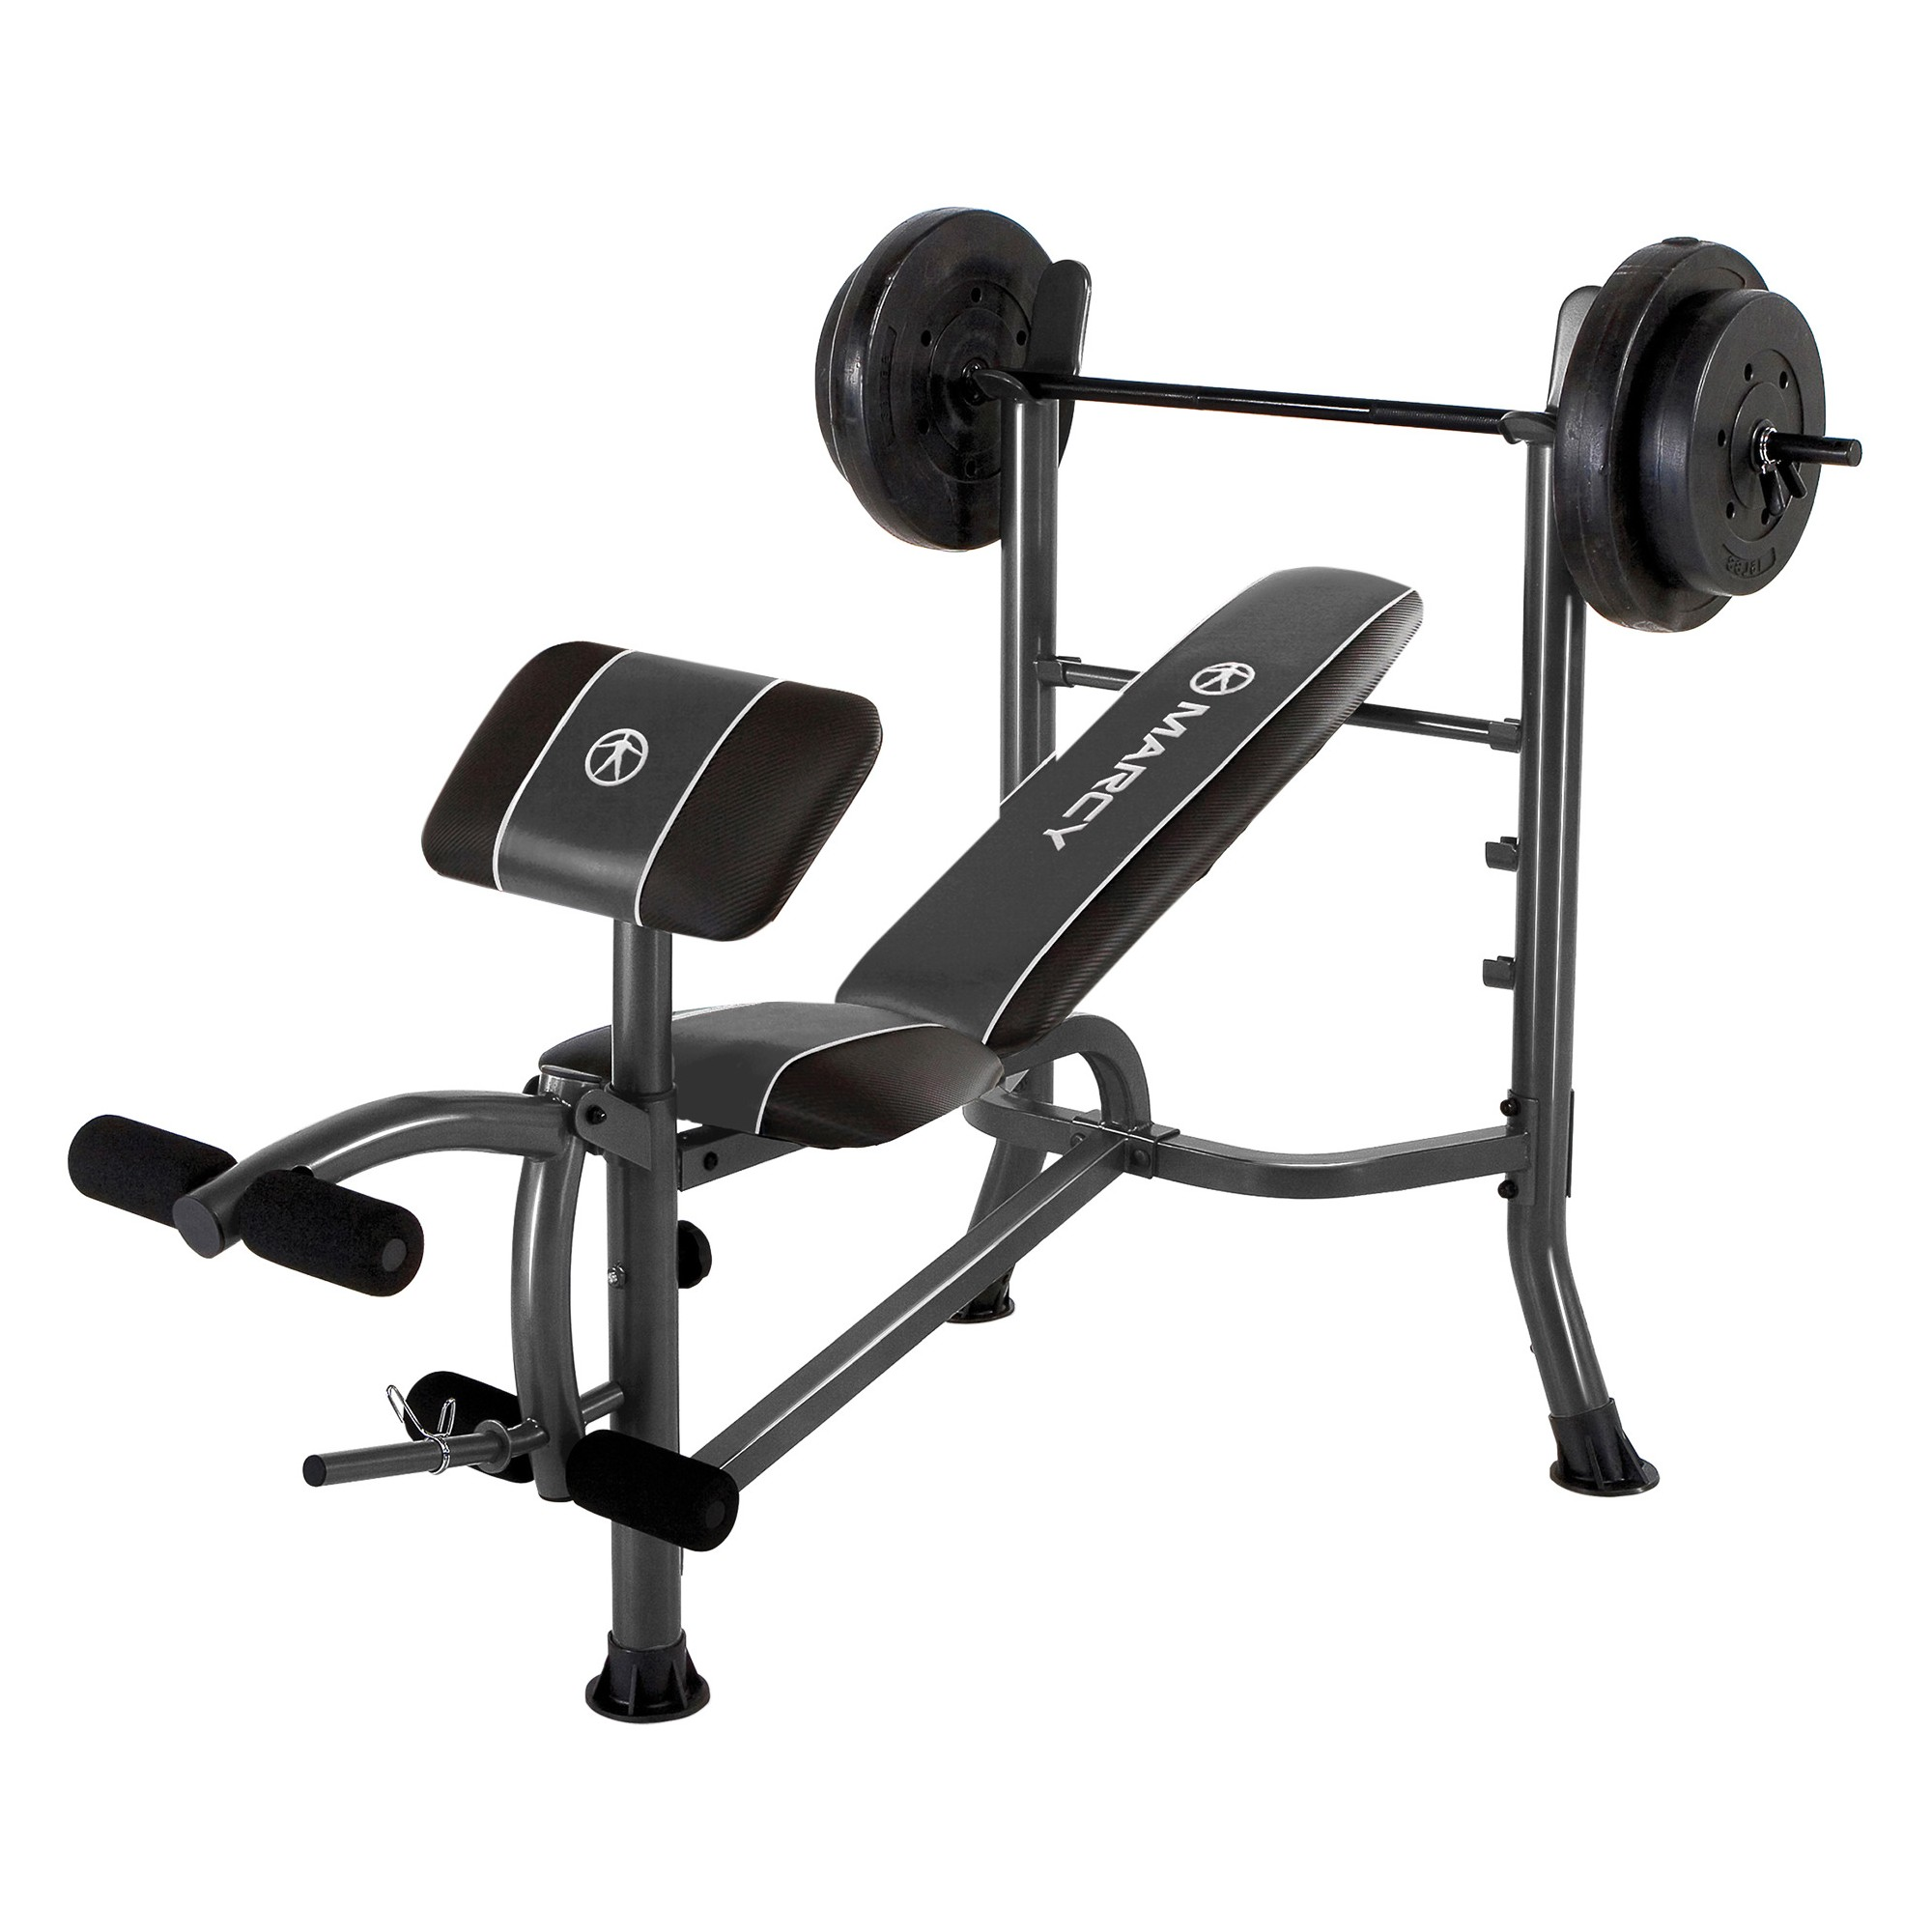 30kg Weight Bench Active Co A00809 At Home Gym Weight Benches No Equipment Workout